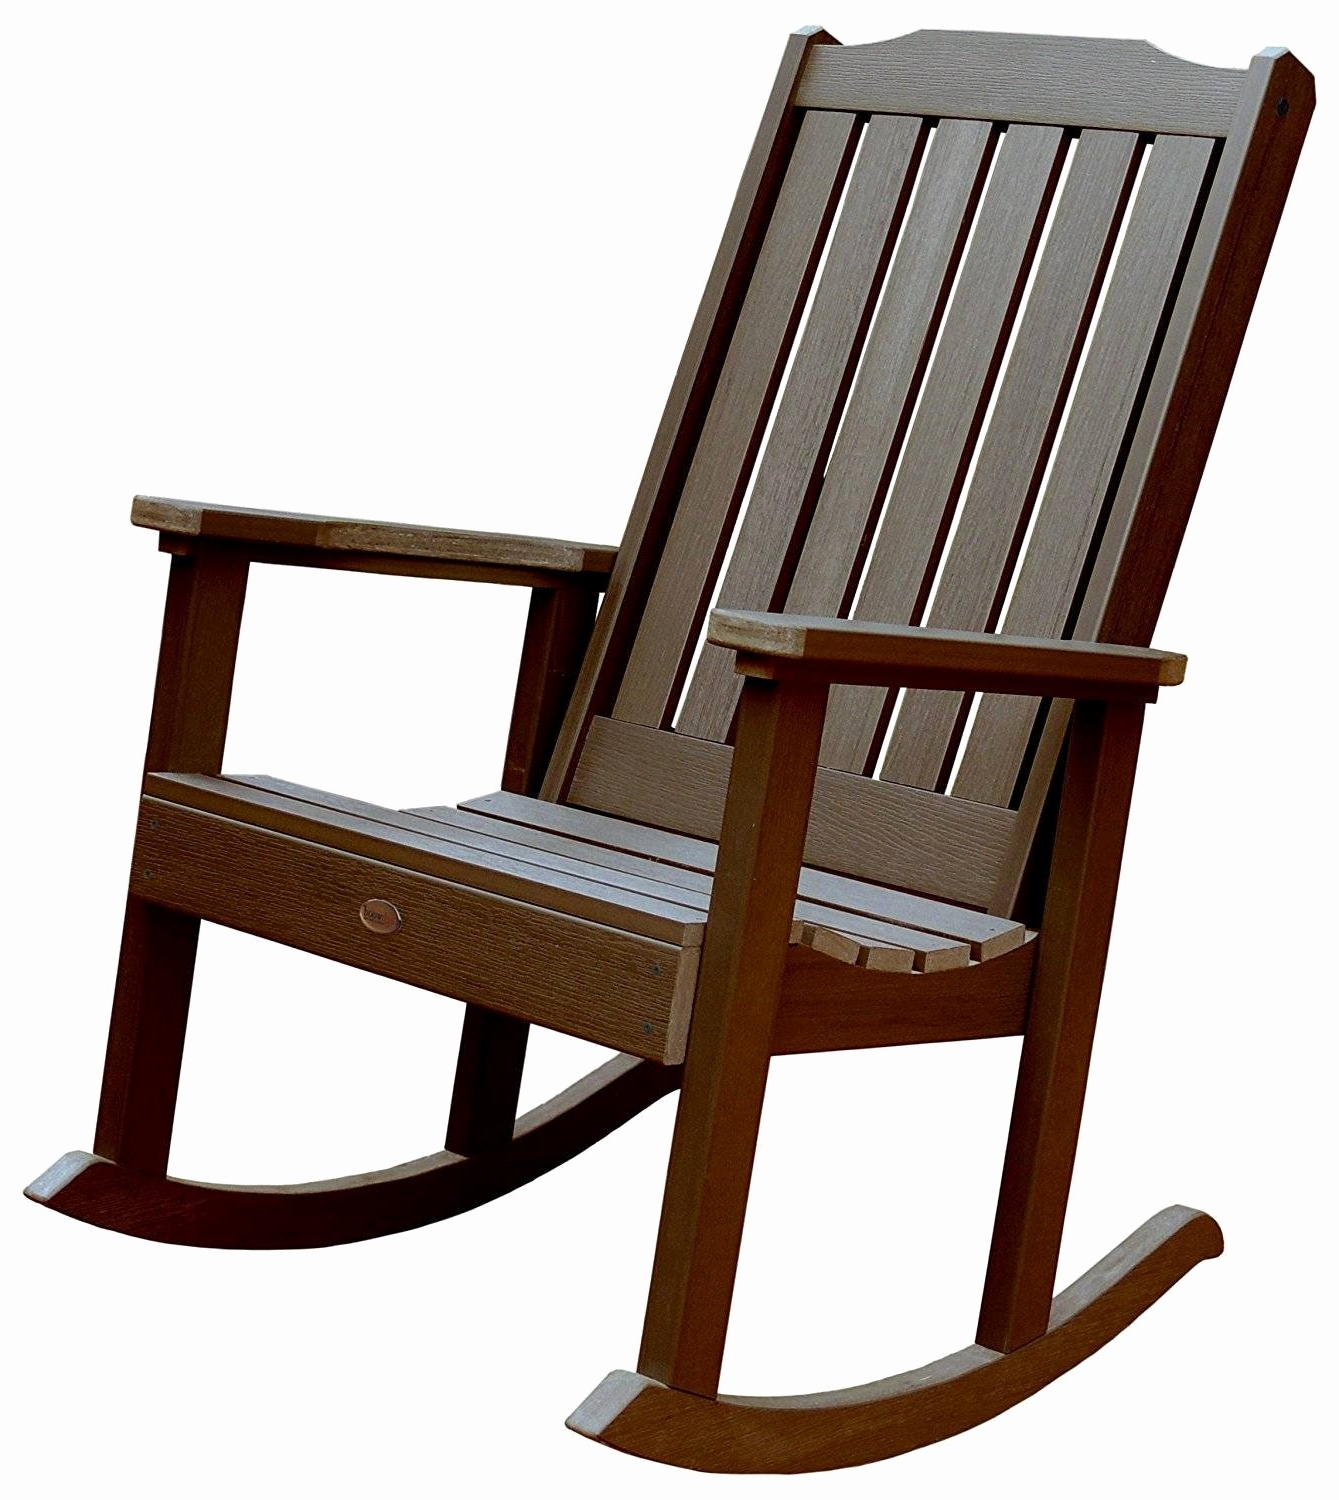 Stackable Patio Rocking Chairs Regarding Trendy Wicker Rocking Chair Set New 3 Piece Bistro Set Furniture Patio (View 10 of 15)